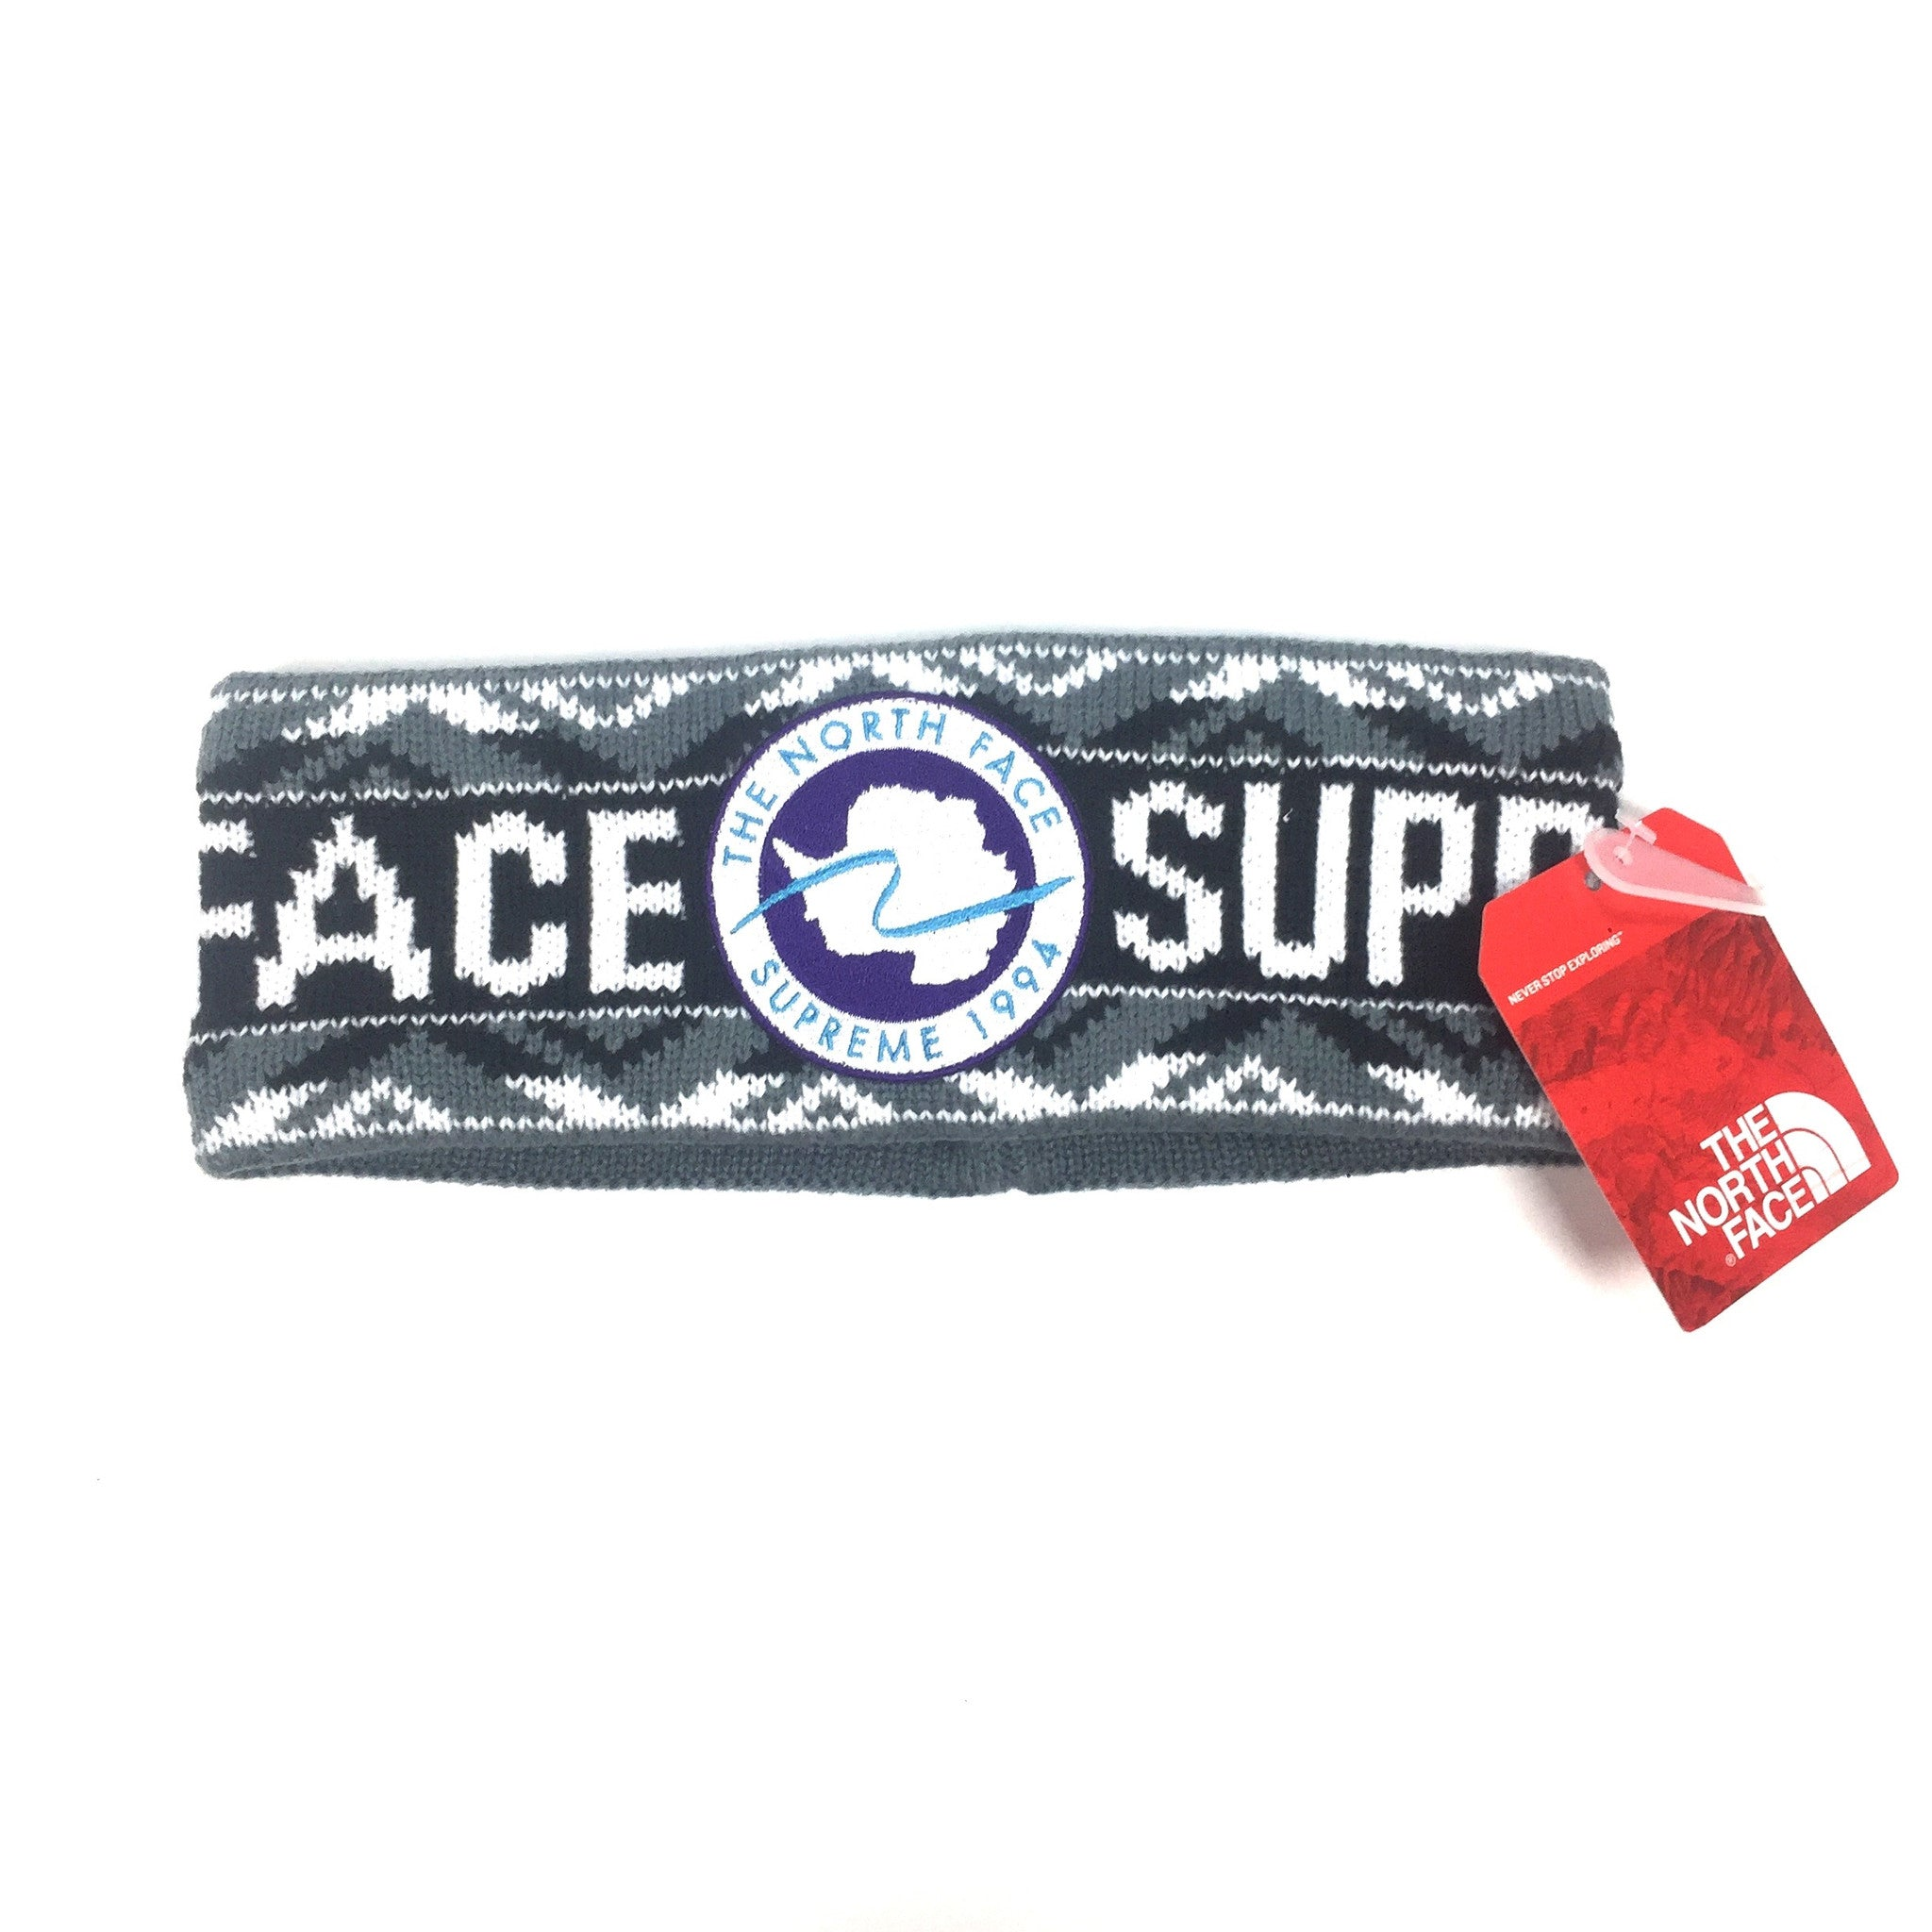 Supreme x The North Face - Black Logo Knit Headband